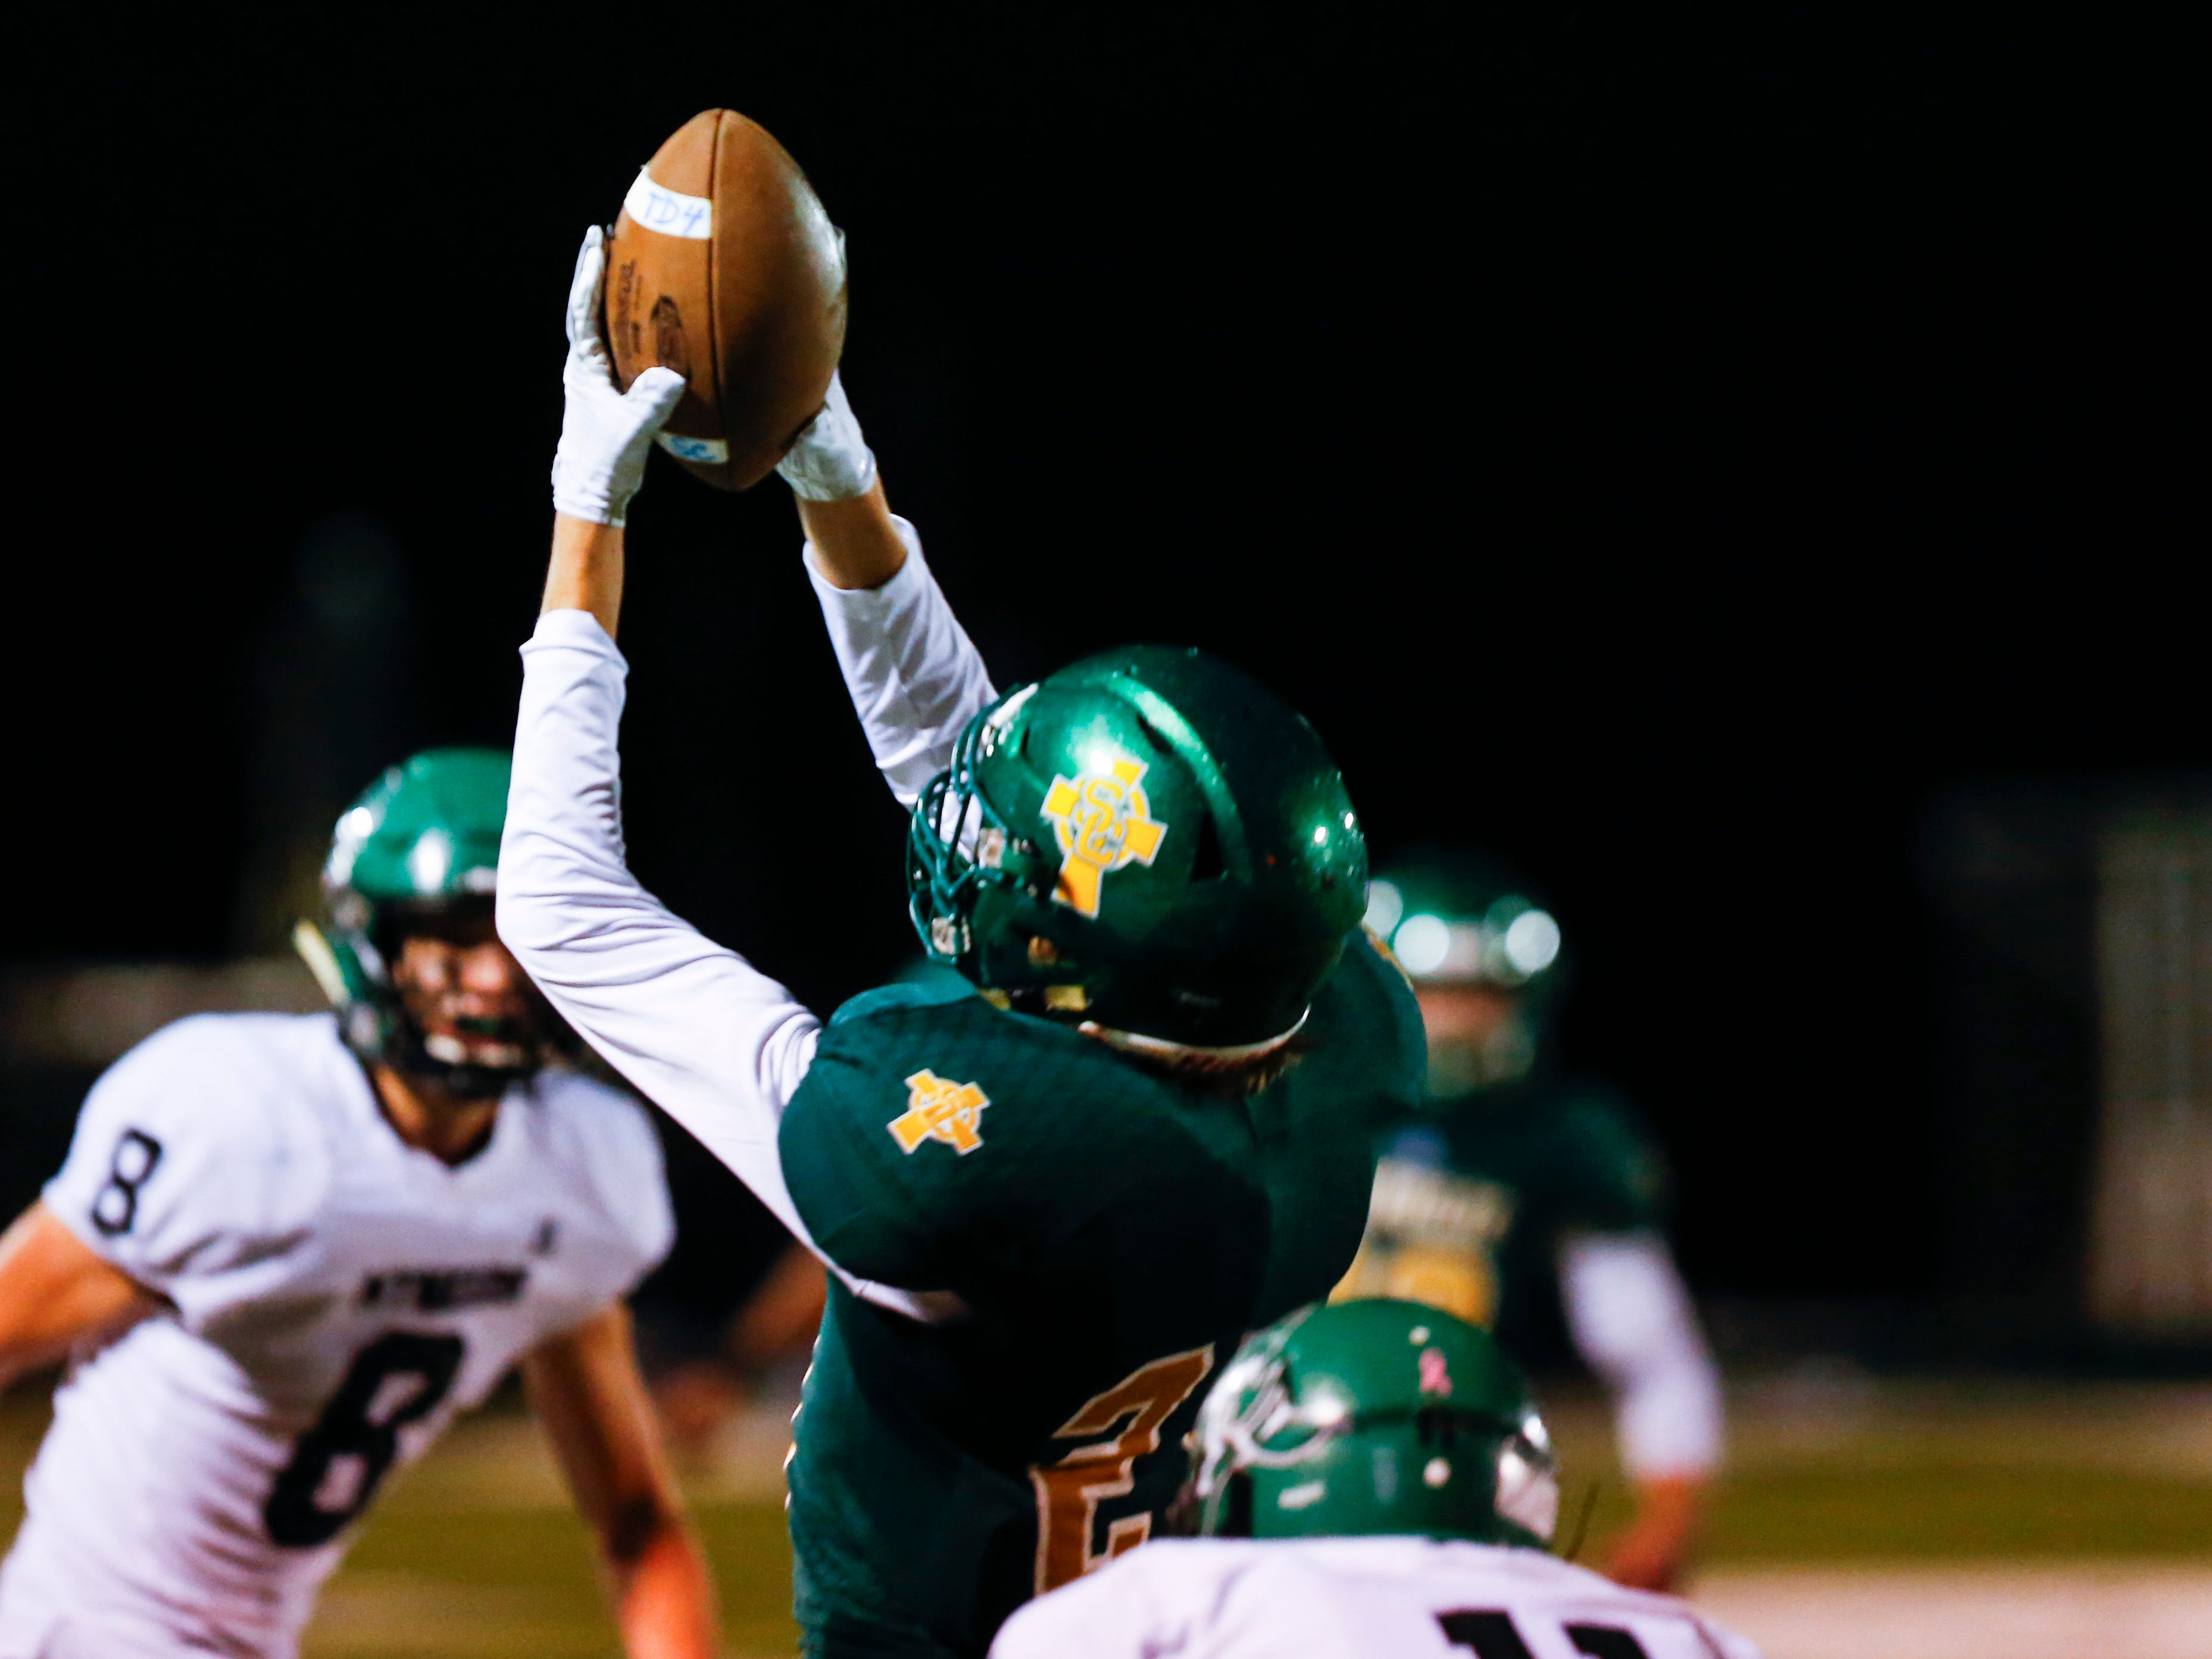 Springfield Catholics Charlie O'Reilly catches a pass during a game against the Mt. Vernon Mountaineers at Catholic on Friday, Oct. 12, 2018.